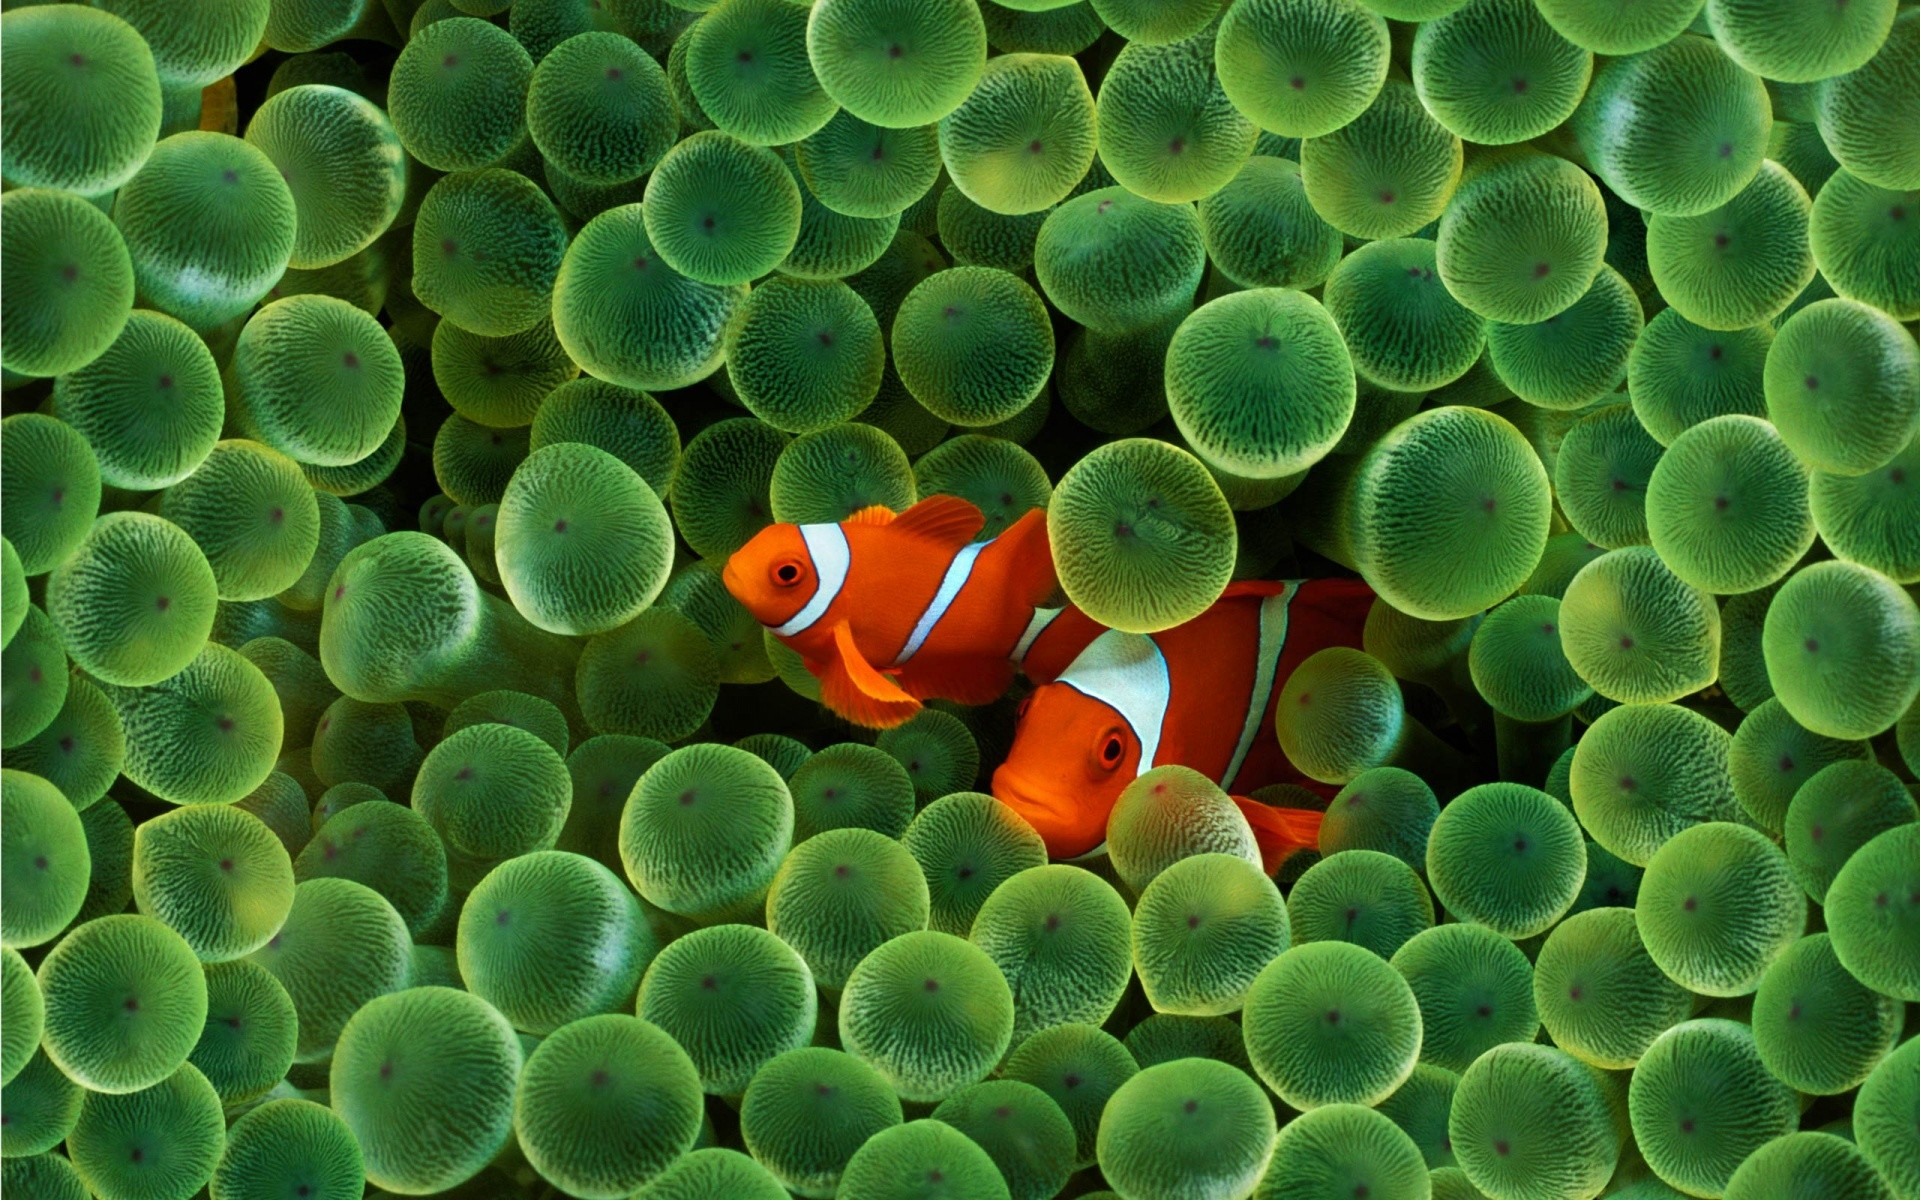 1920x1200 Apple Inc Wallpaper - iPhone Clown Fish Wallpapers - HD Wallpapers .